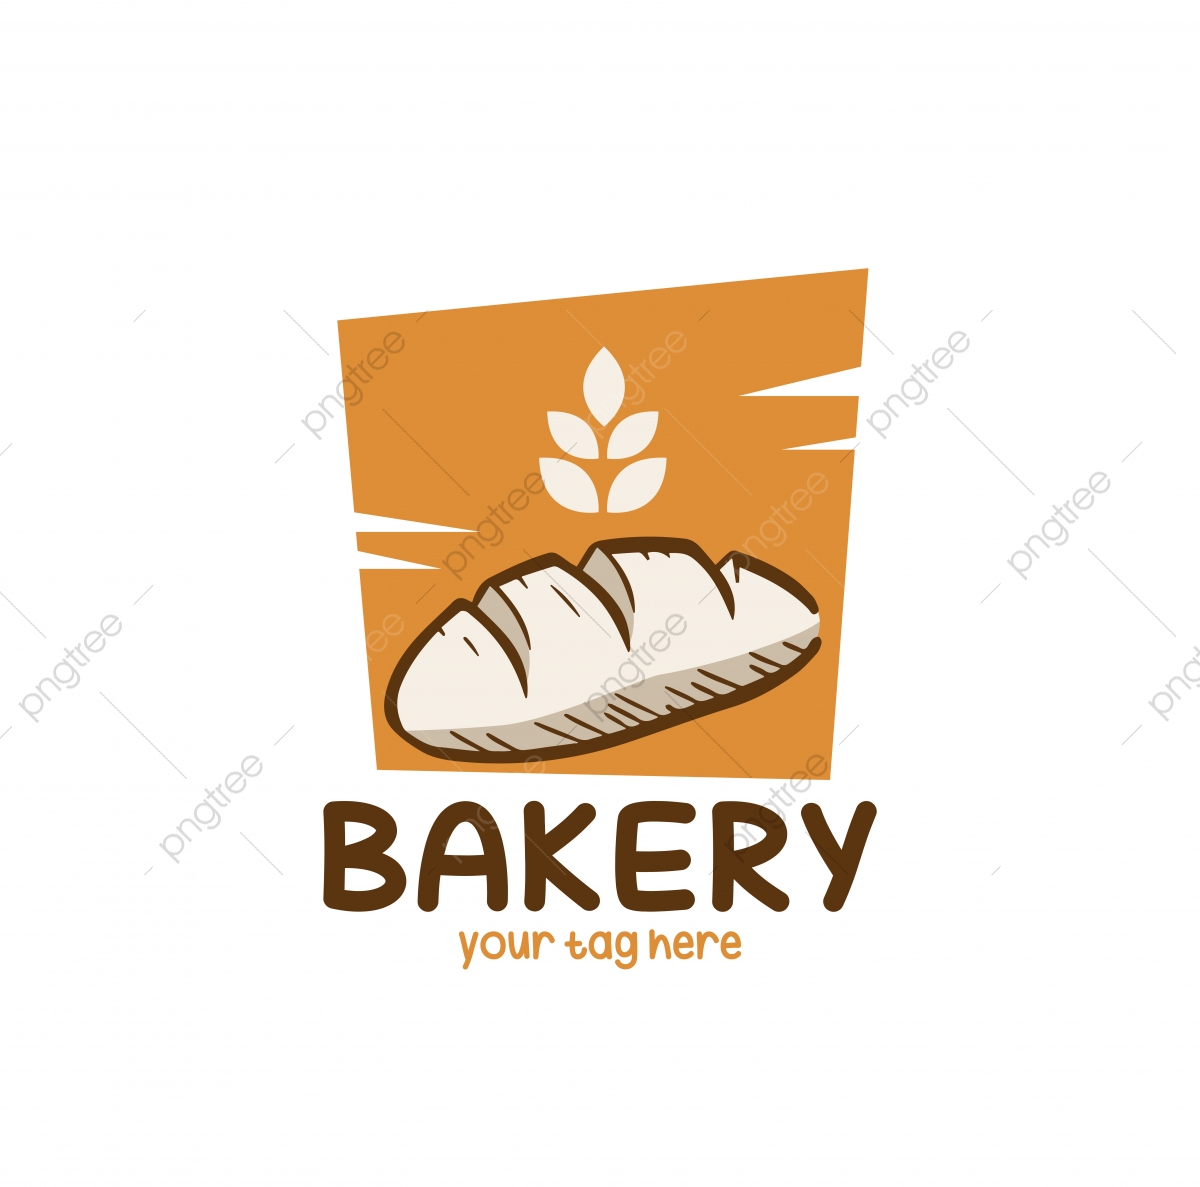 Bread Bakery Logo Design Inspiration Bread Logo Bakery Png And